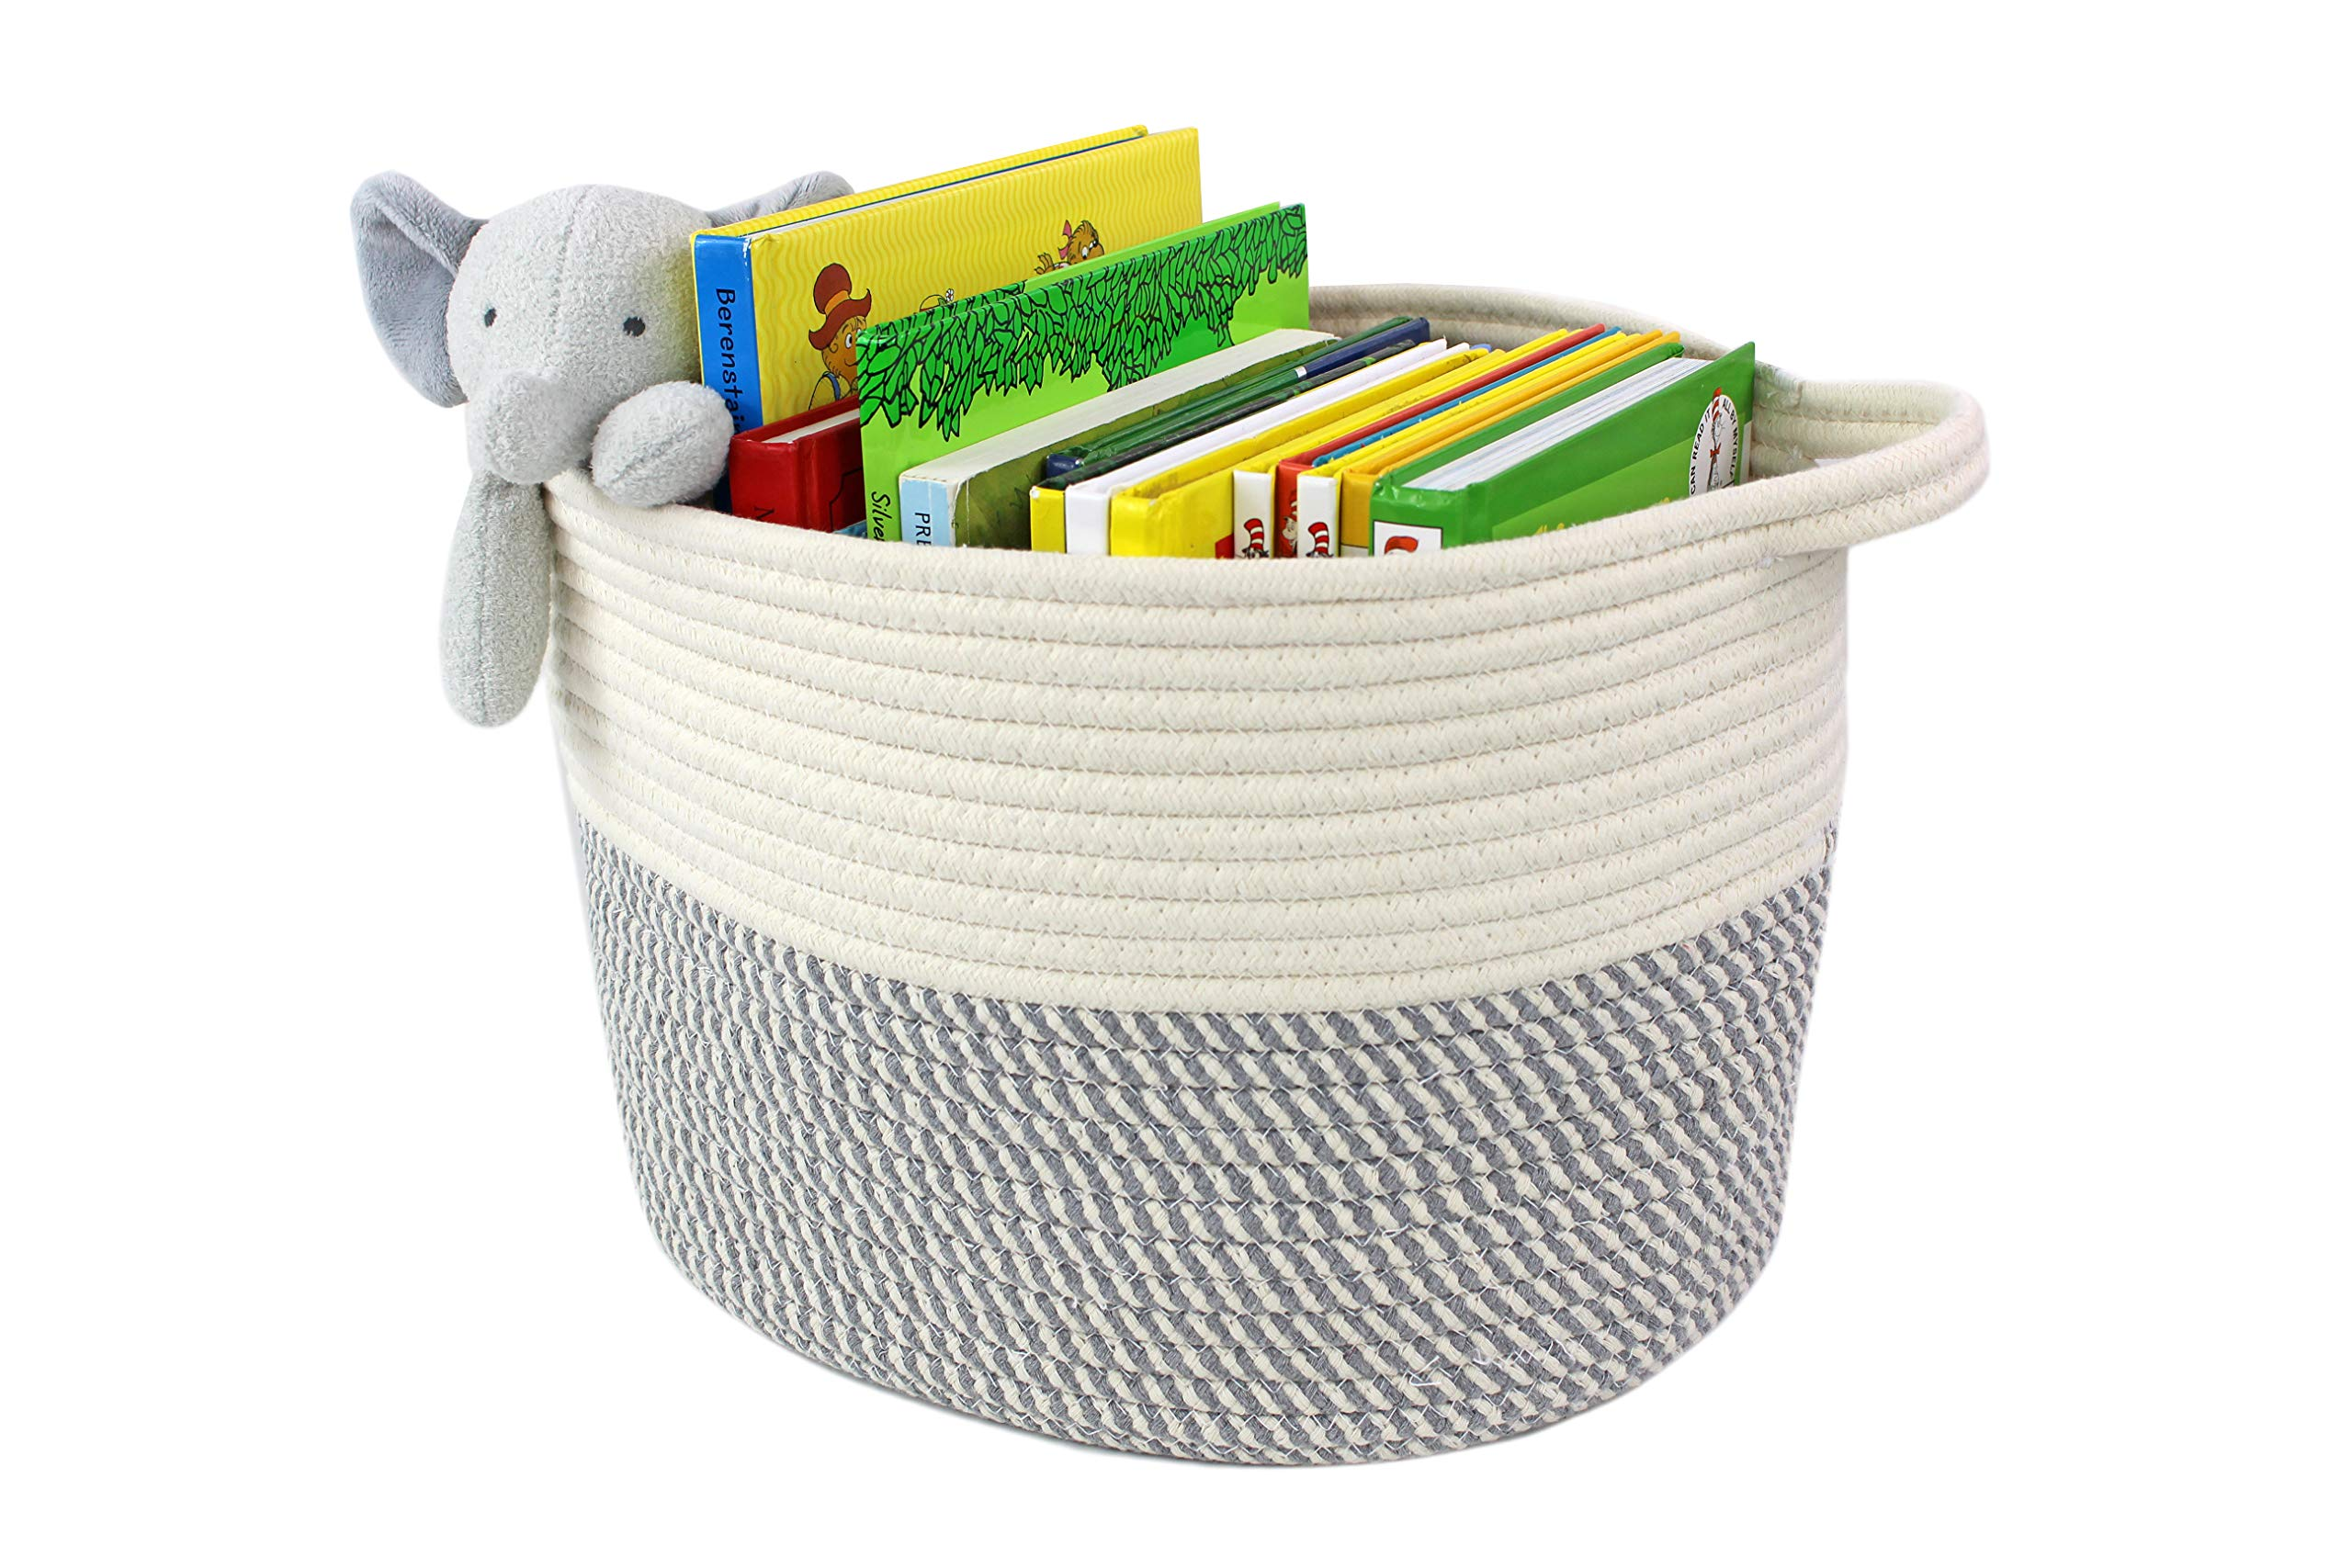 Bins & Things Cotton Rope Basket - Set of 3 Woven Basket - Sturdy Baby Nursery Toy Storage Basket with Handles - Baskets Come in 3 Sizes (S, M, L)